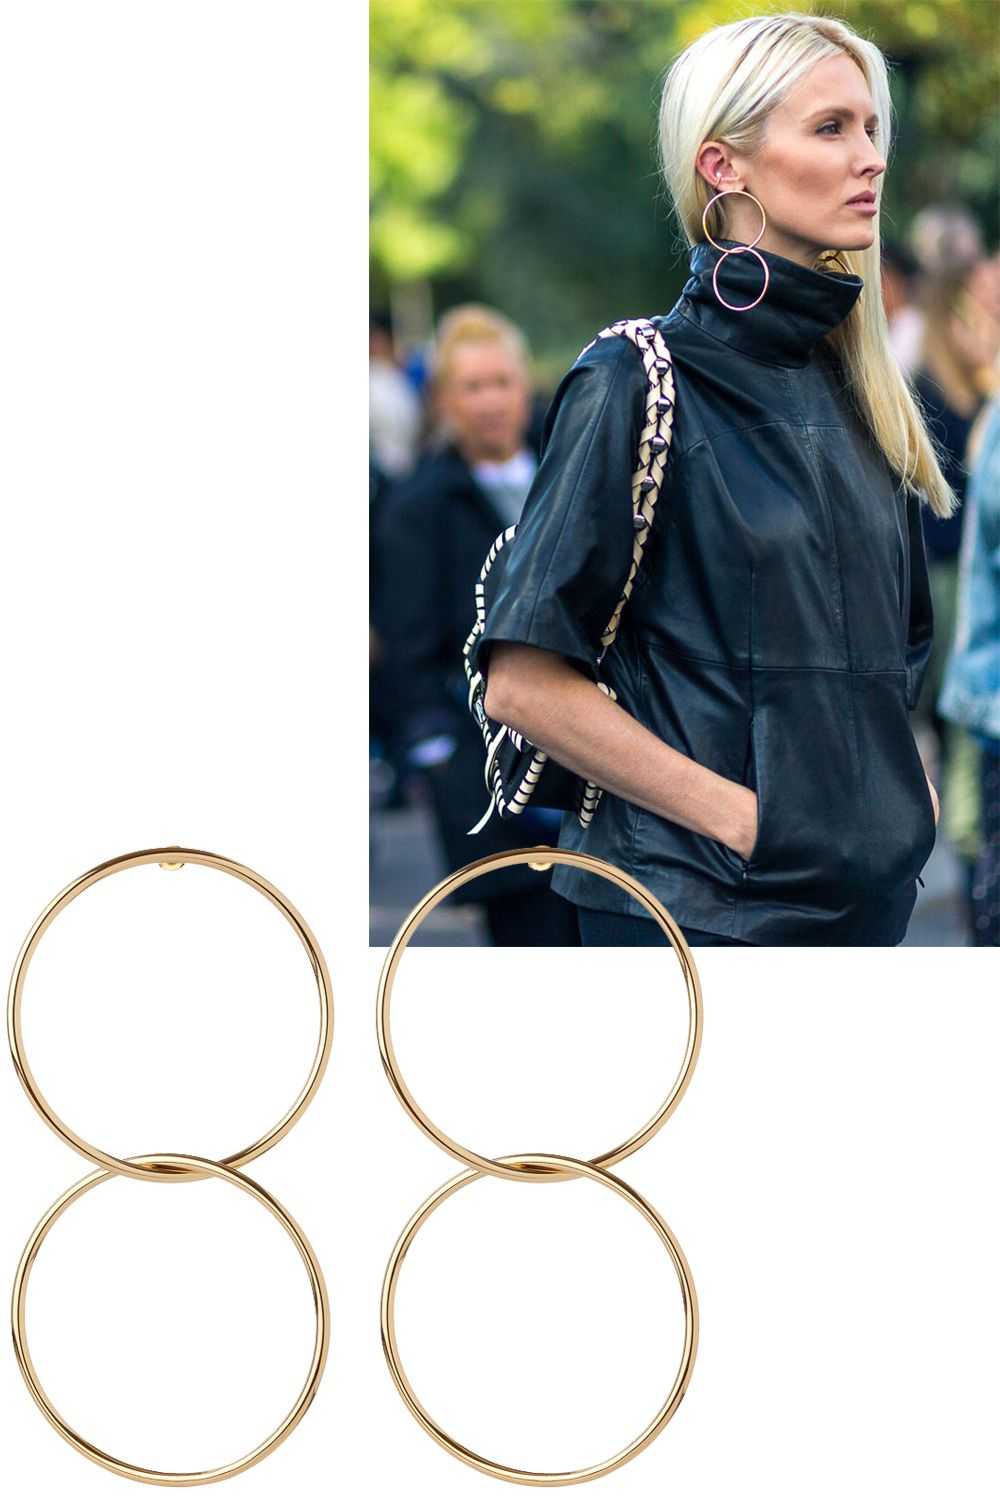 """<p>It's no secret that statement earrings are on-trend, and&nbsp&#x3B;Kate Davidson Hudson&nbsp&#x3B;<span class=""""redactor-invisible-space"""">layered hers&nbsp&#x3B;with a turtleneck.&nbsp&#x3B;</span></p><p><em data-redactor-tag=""""em"""" data-verified=""""redactor"""">Jennifer Fisher earrings, $315 (pre-order), <strong data-redactor-tag=""""strong"""" data-verified=""""redactor""""><a href=""""https://shop.harpersbazaar.com/j/jennifer-fisher/interlocking-smooth-circle-earrings-9699.html"""" target=""""_blank"""">shopBAZAAR.com</a></strong>.&nbsp&#x3B;</em></p>"""